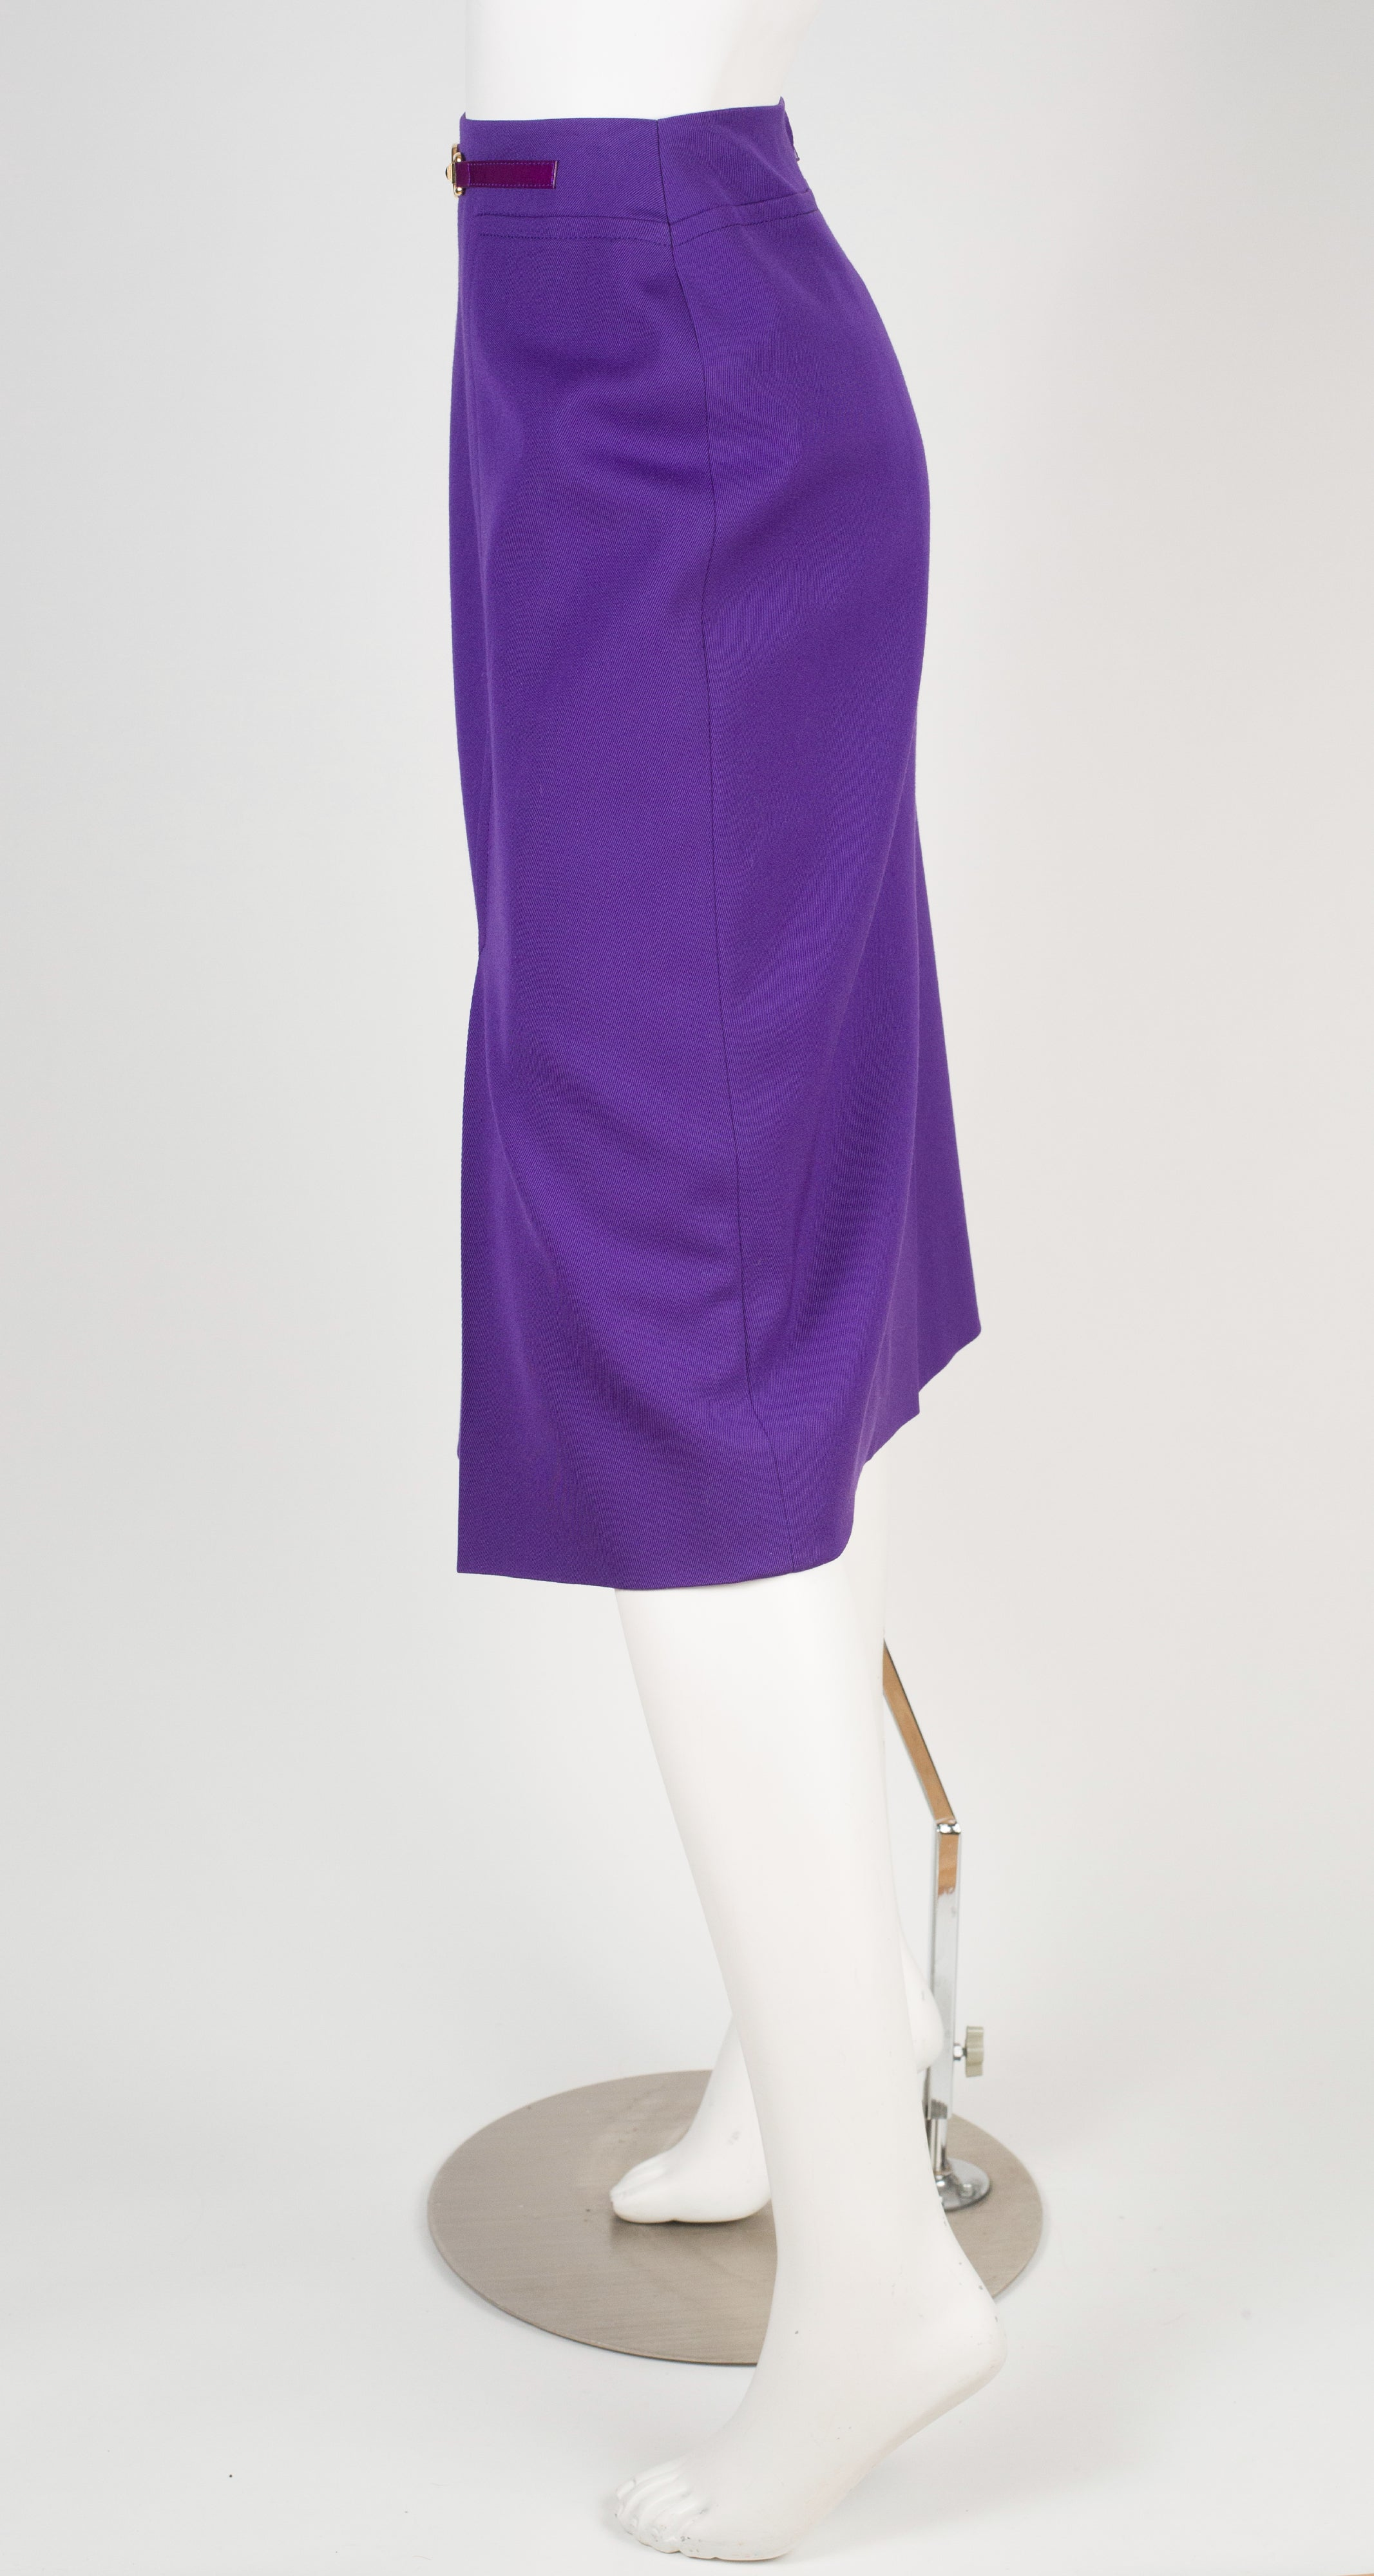 1980s Purple Wool & Leather Skirt